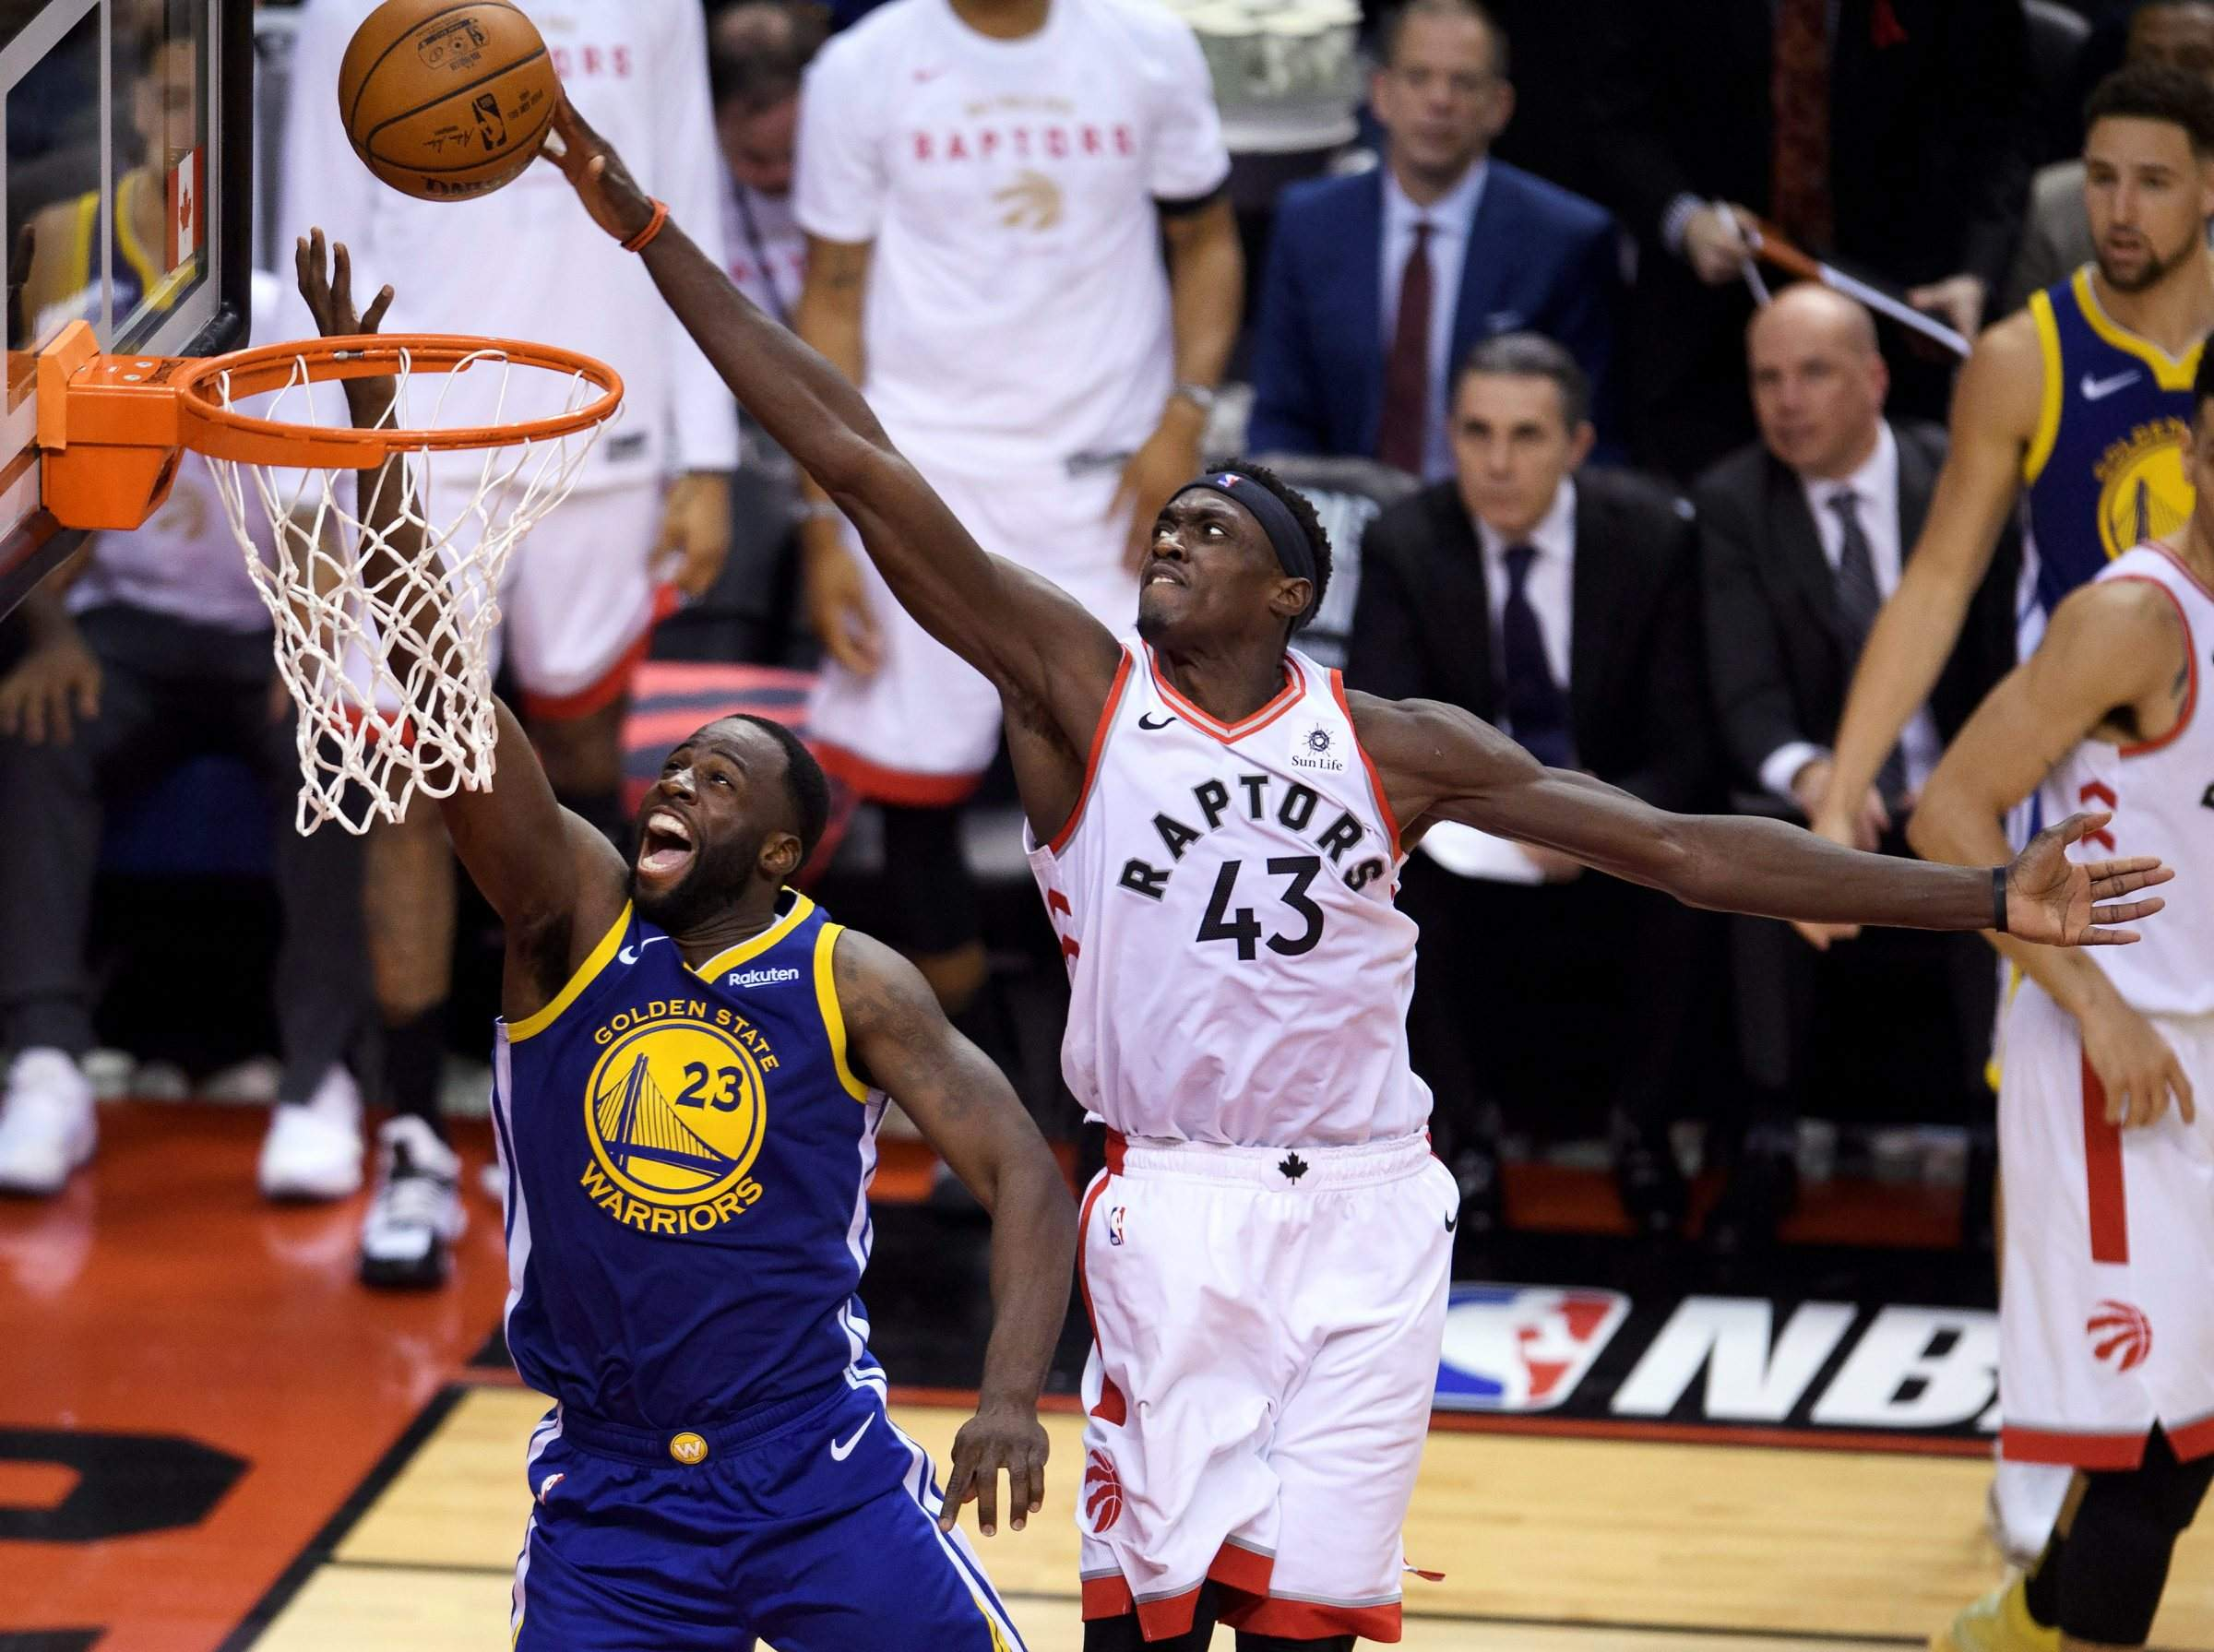 c1e29542d48 Toronto Raptors forward Pascal Siakam blocks a shot by Golden State Warriors  forward Draymond Green during the second half of Game 1 of the NBA Finals on  ...